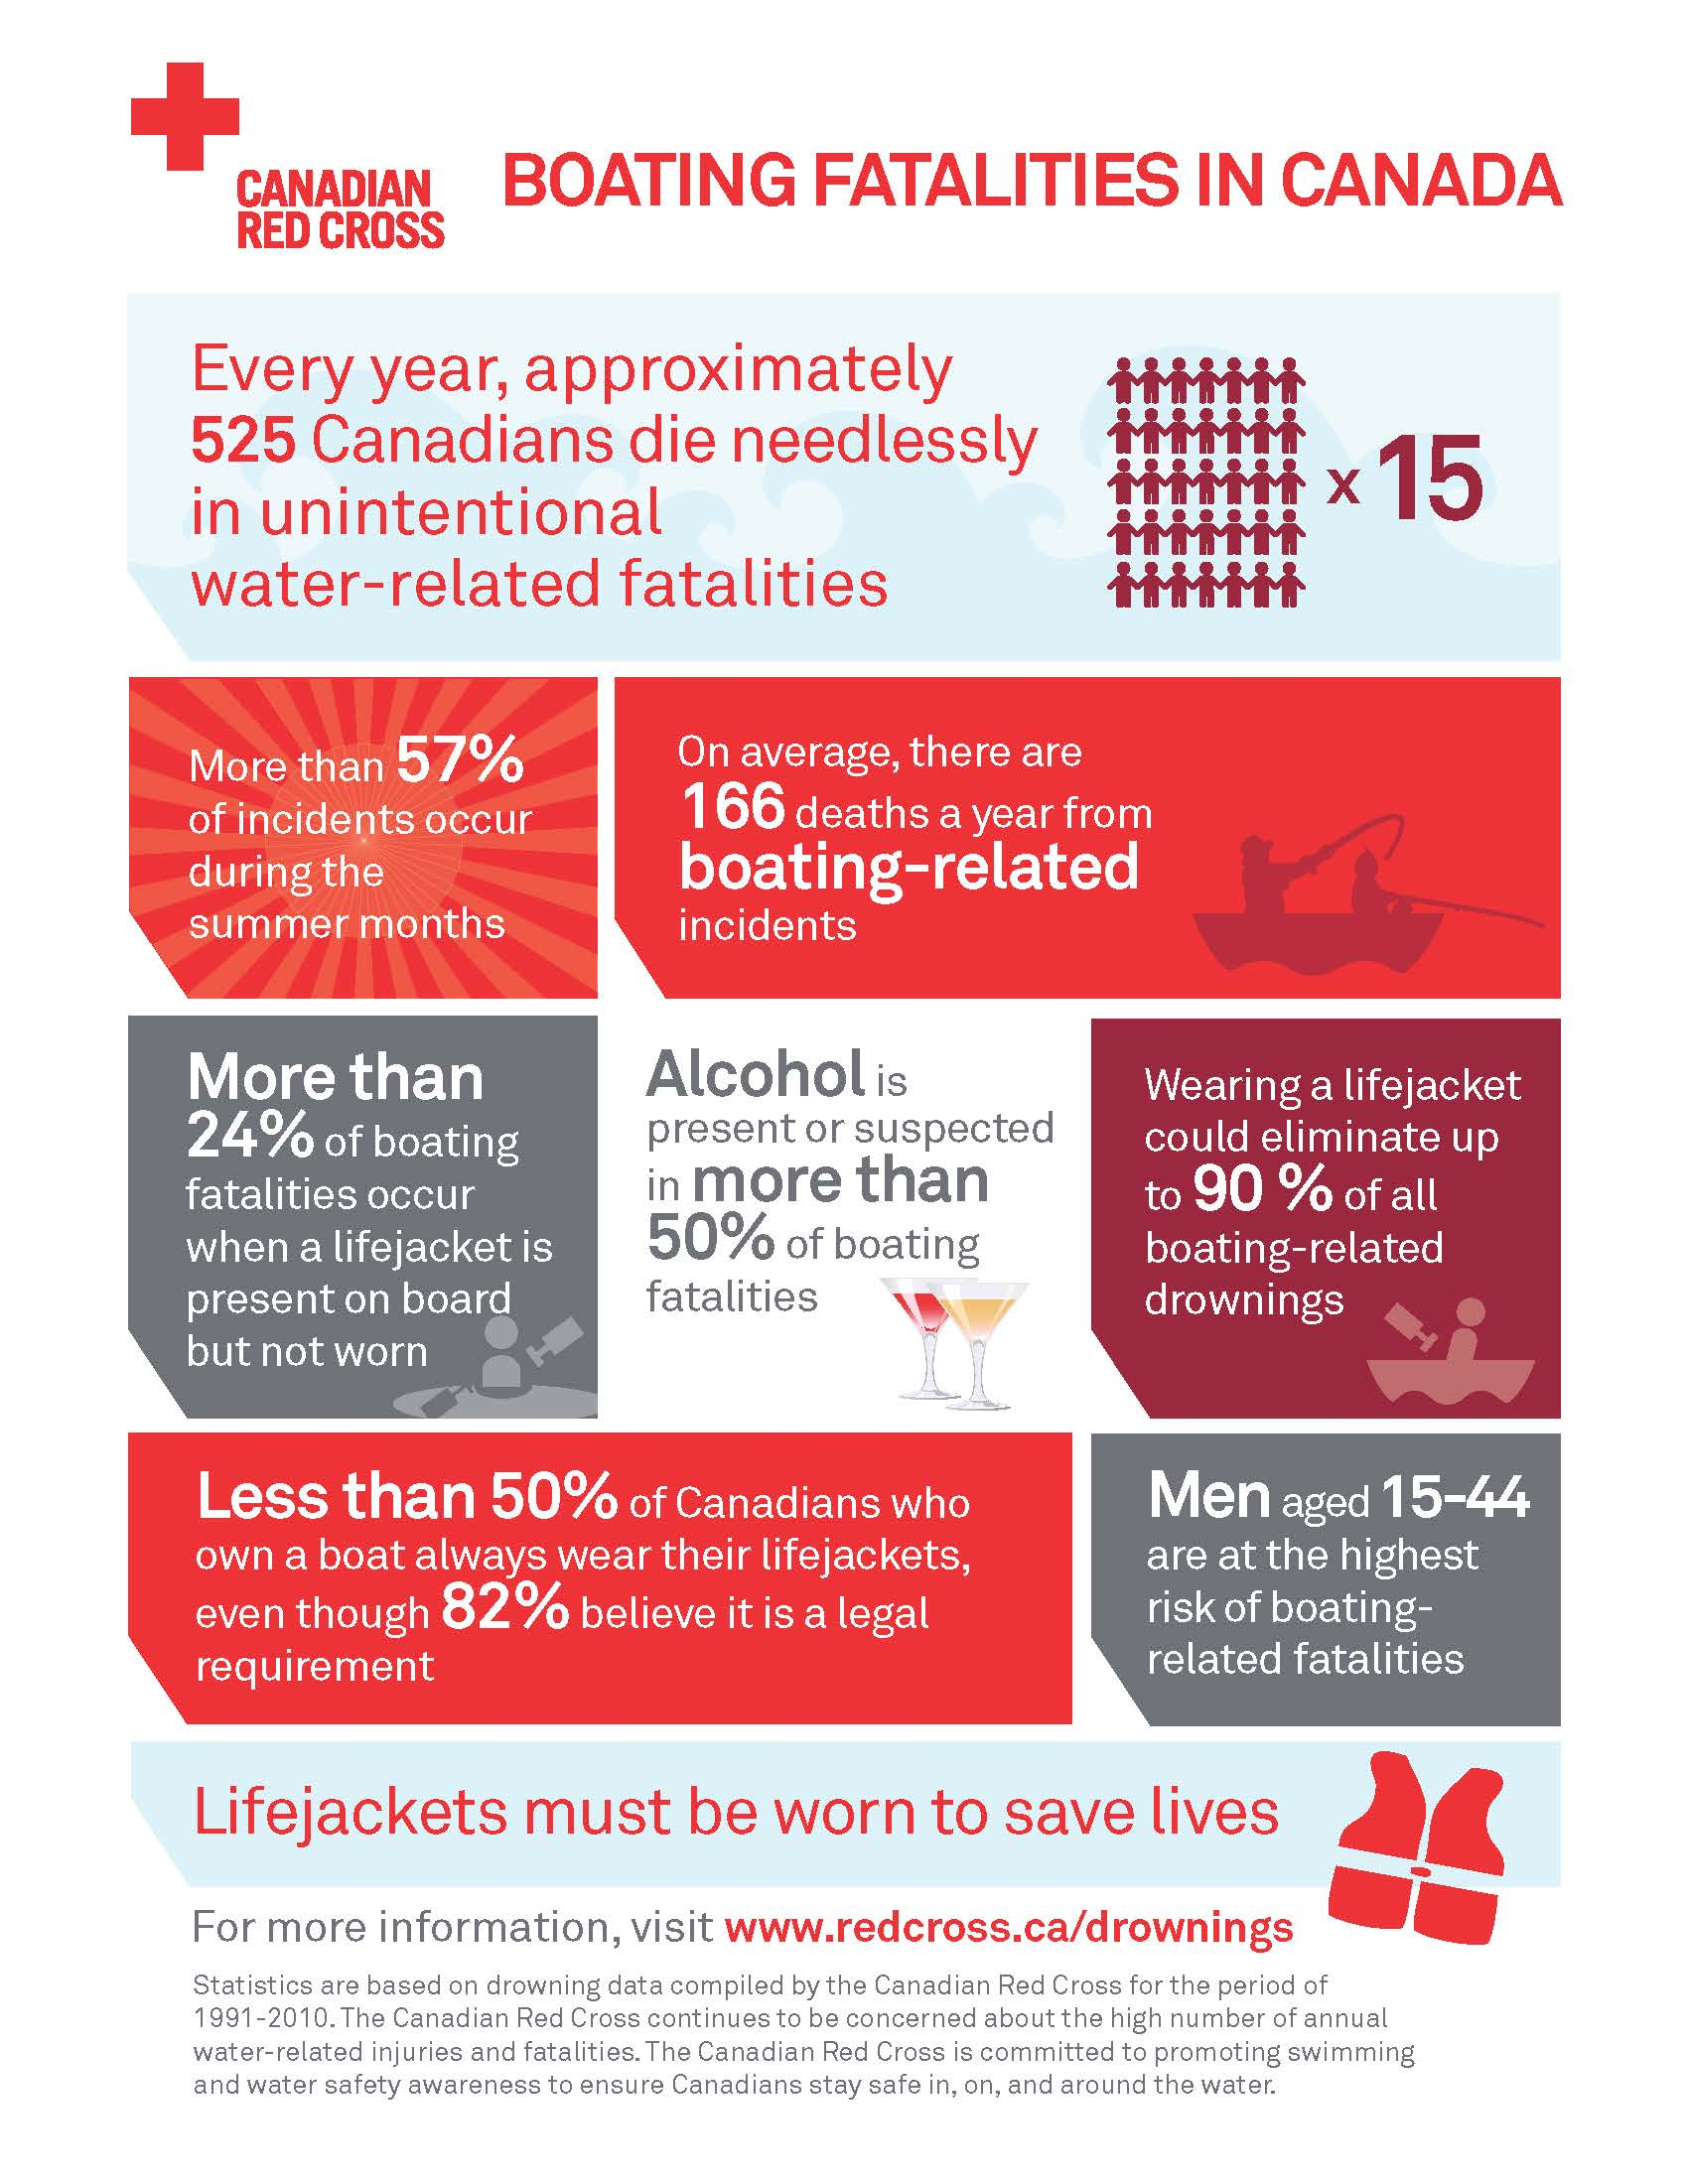 Red Cross Infographic - Boating Fatalities in Canada